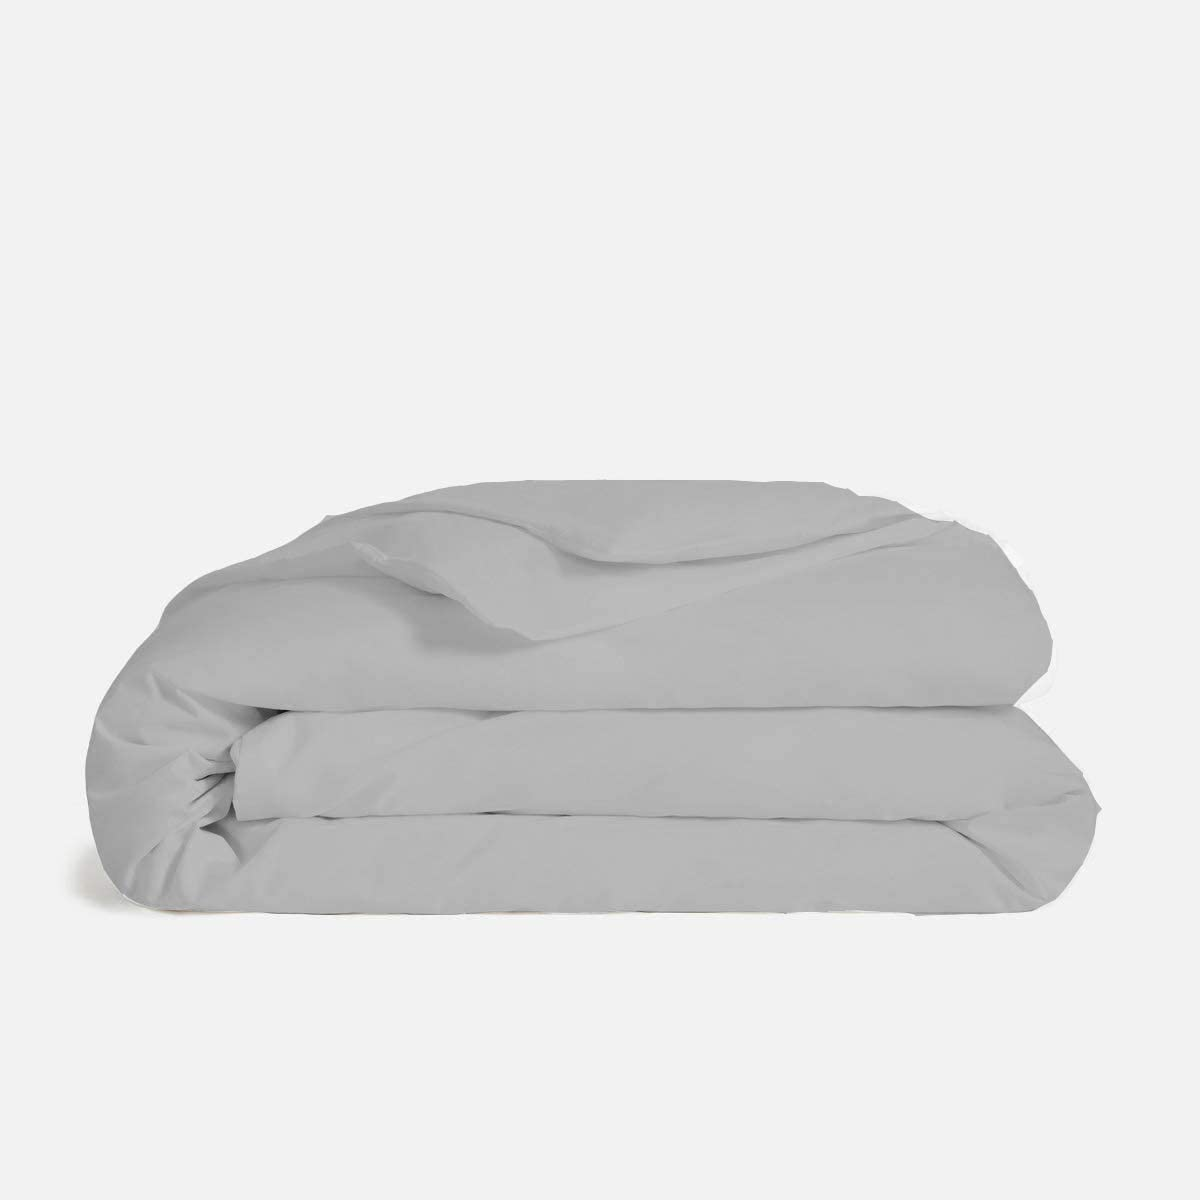 True-Luxury 1000-Thread-Count 100% Egyptian Cotton 3 Piece Duvet Cover Set [Cal-King 104''X 98''-Light Grey] Single Ply Yarns Sateen Weave, 100% Long Staple Egyptian Cotton Quilt Cover